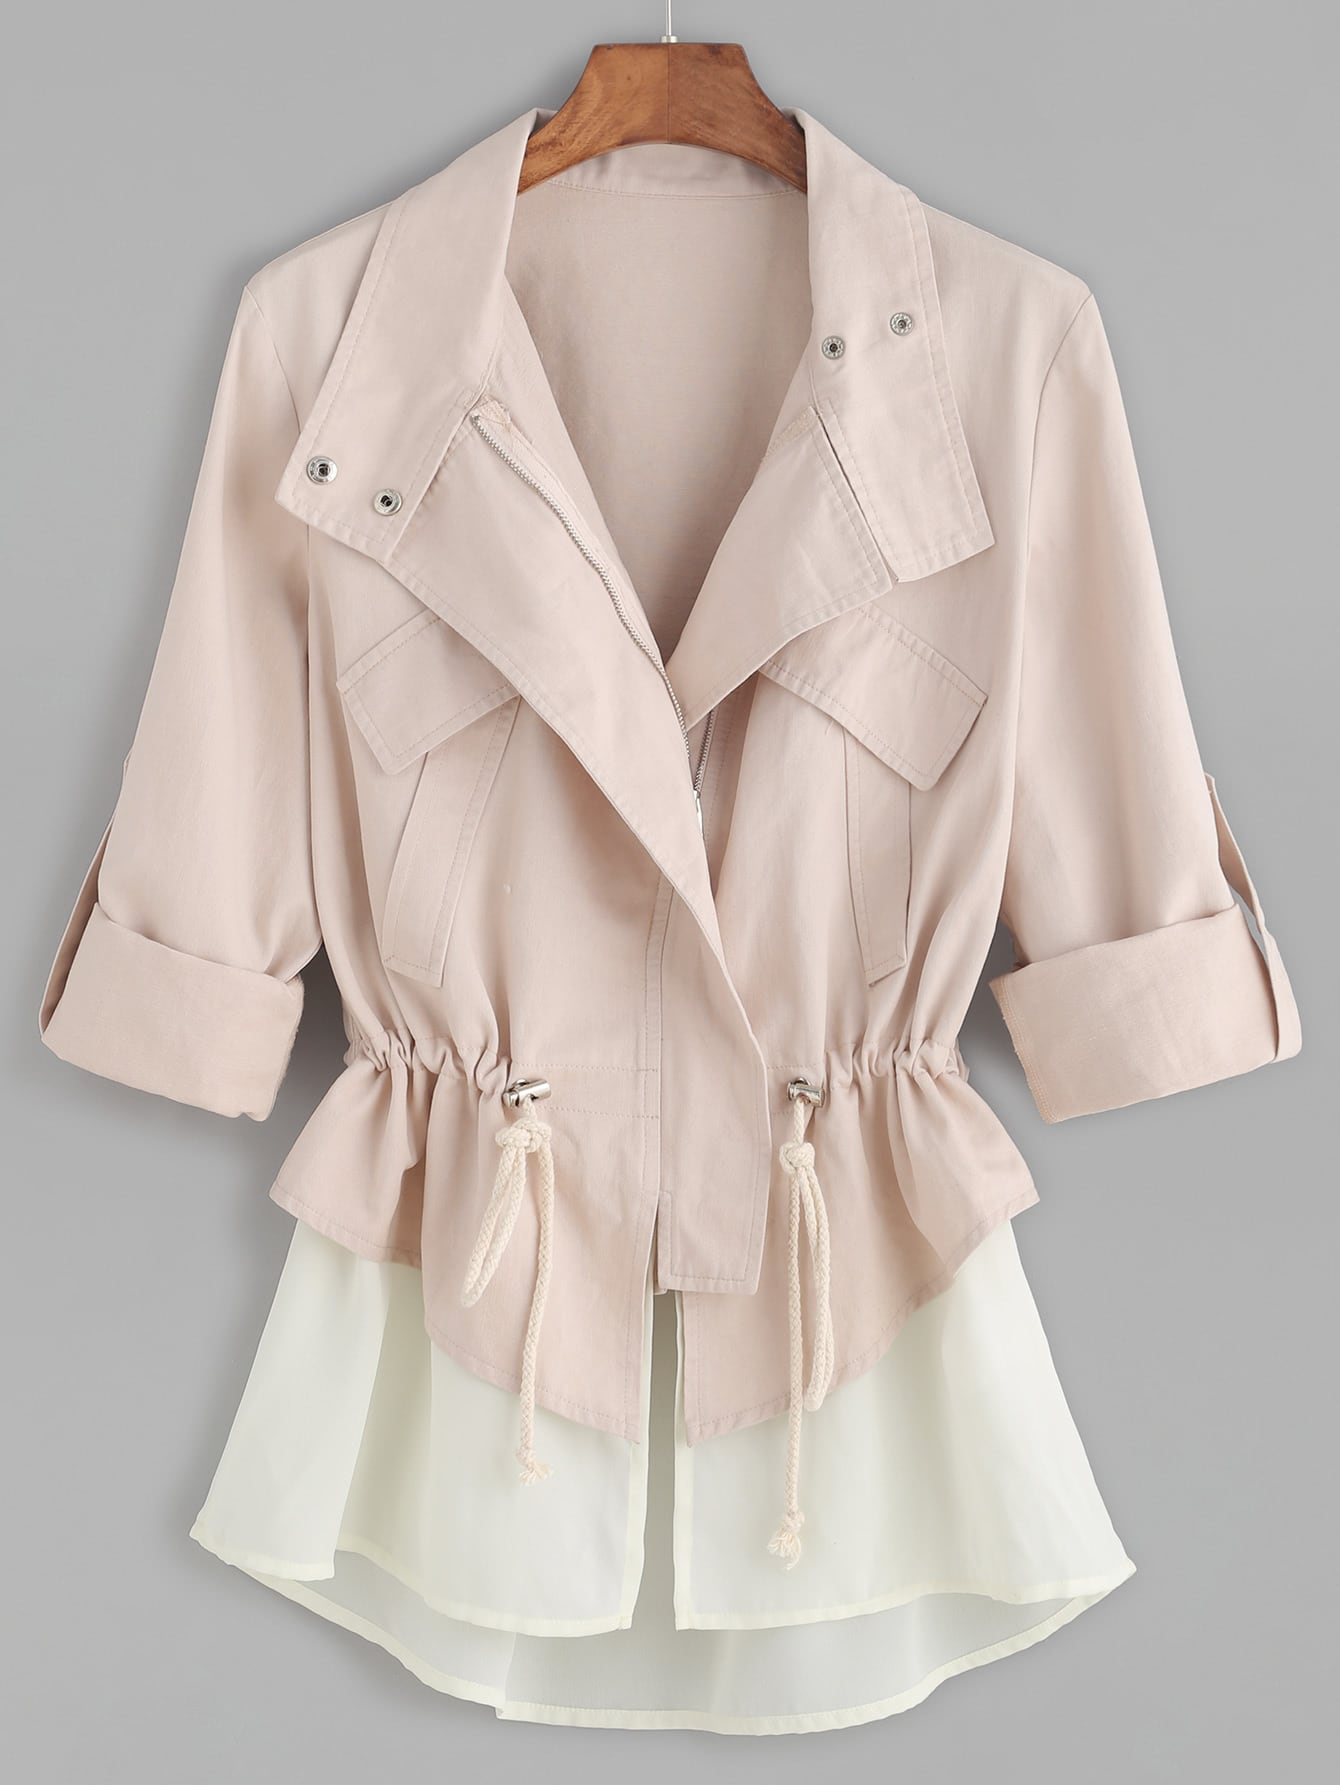 Pink Roll Sleeve Drawstring Jacket With Contrast TrimPink Roll Sleeve Drawstring Jacket With Contrast Trim<br><br>color: White<br>size: M,S,XS